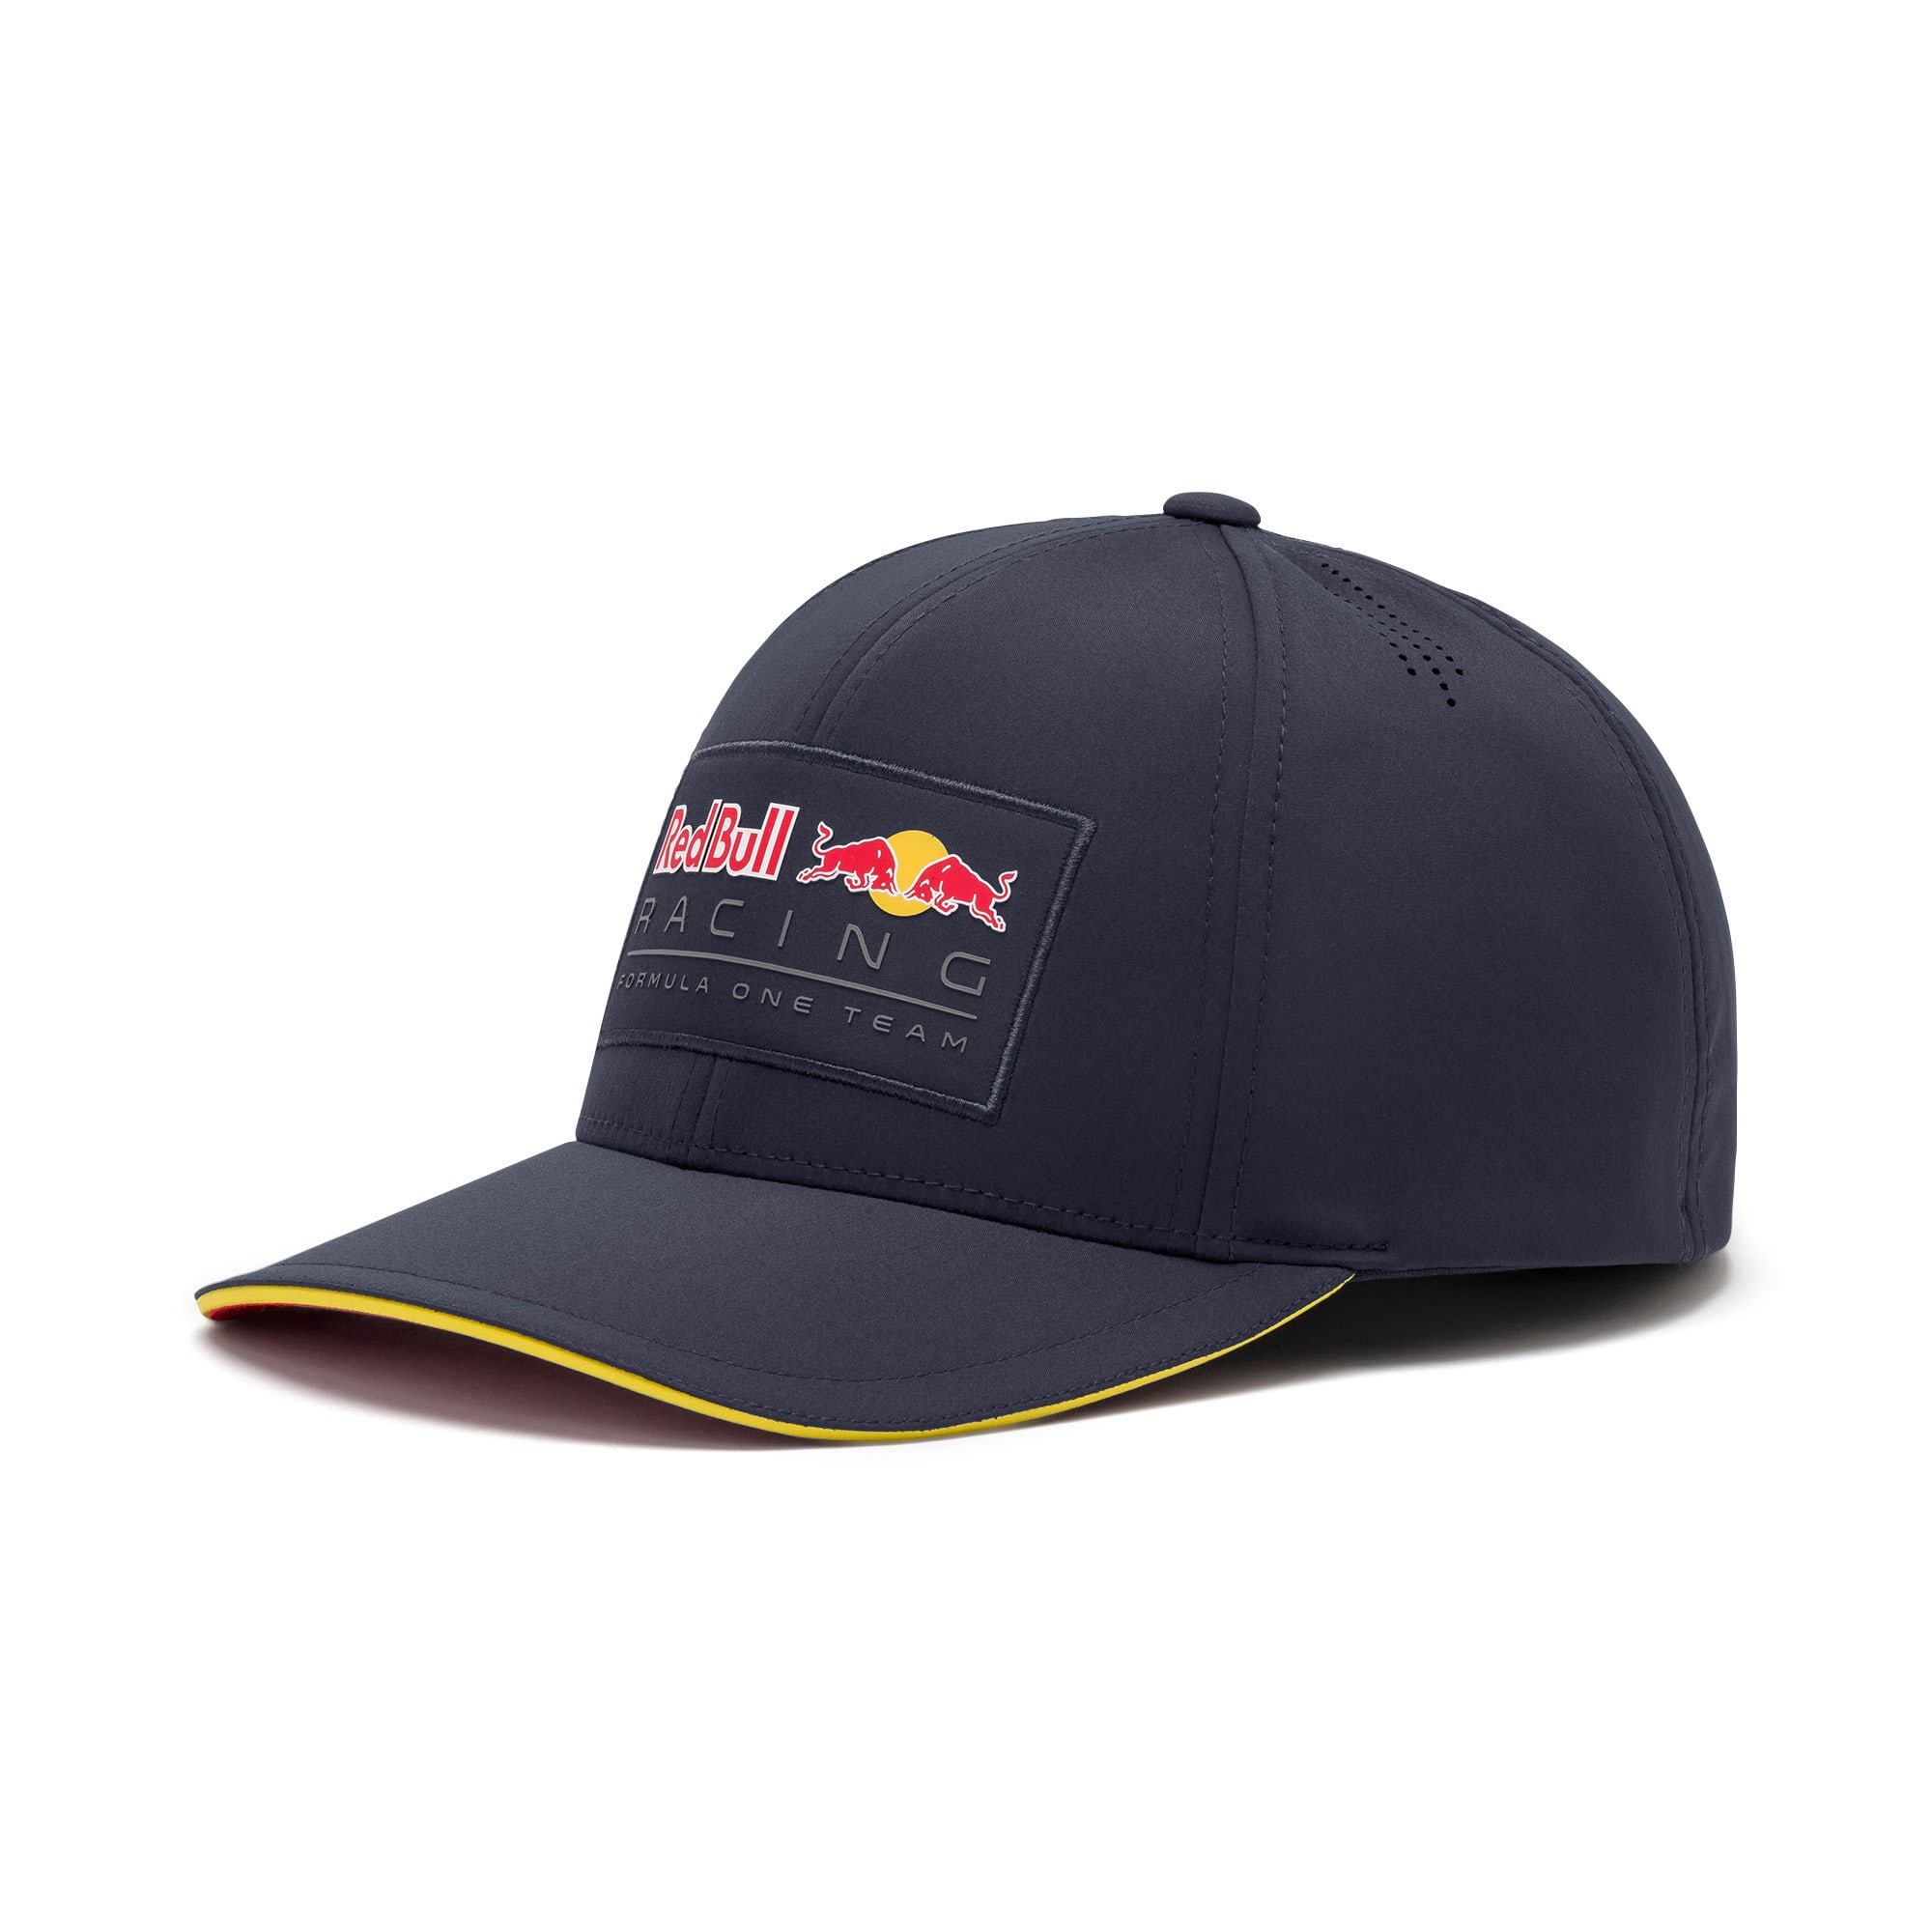 Red Bull Racing Special Edition Lifestyle pet, Zwart | PUMA